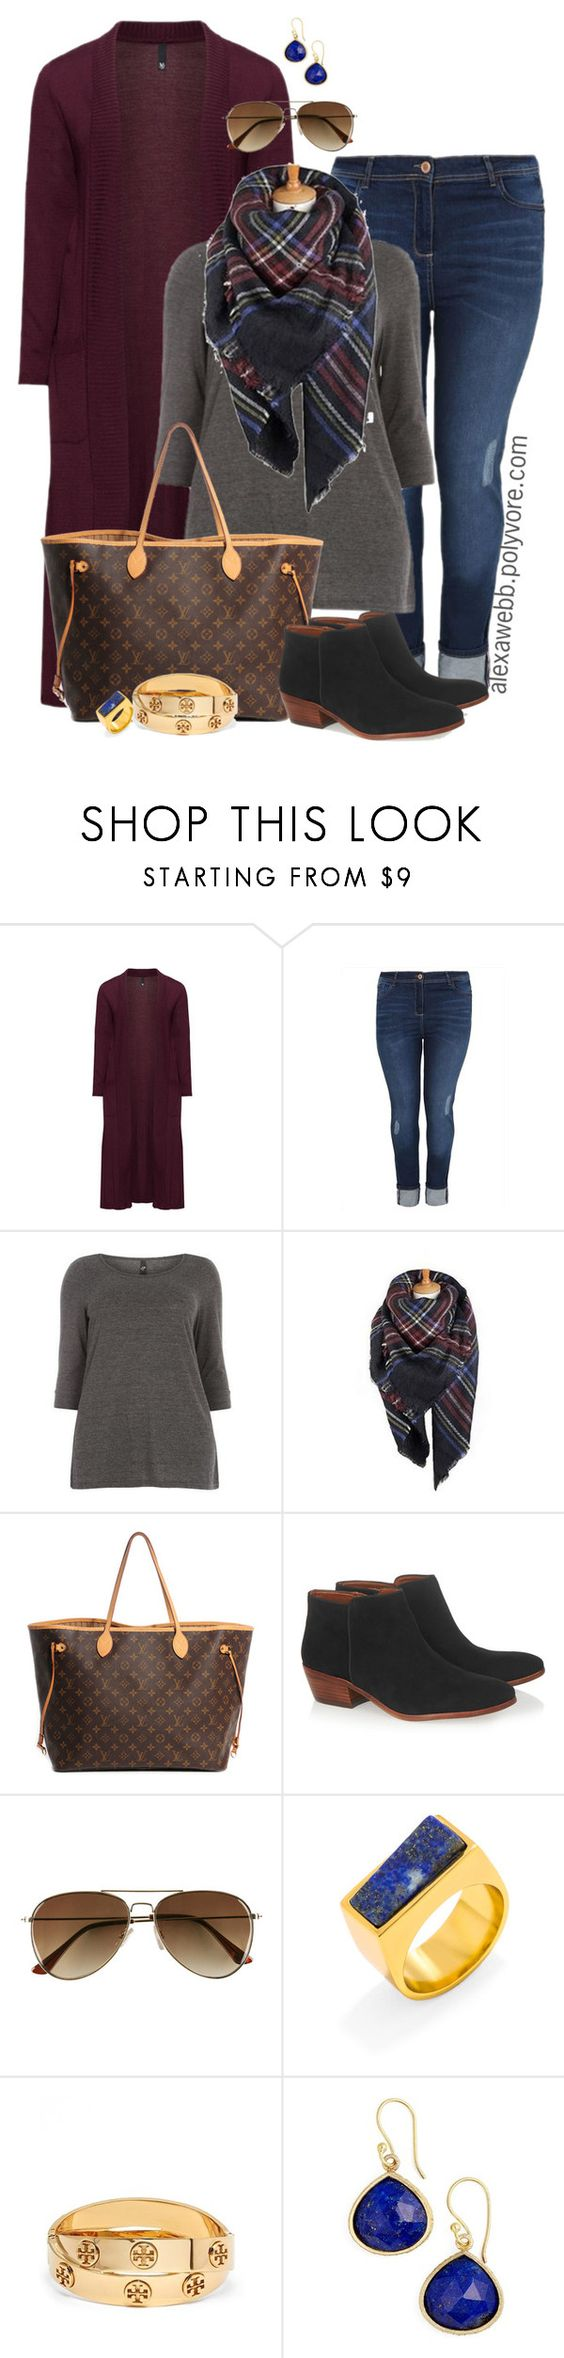 Plus Size - Fall Casual Outfit by alexawebb on Polyvore @alexandrawebb #plussize…